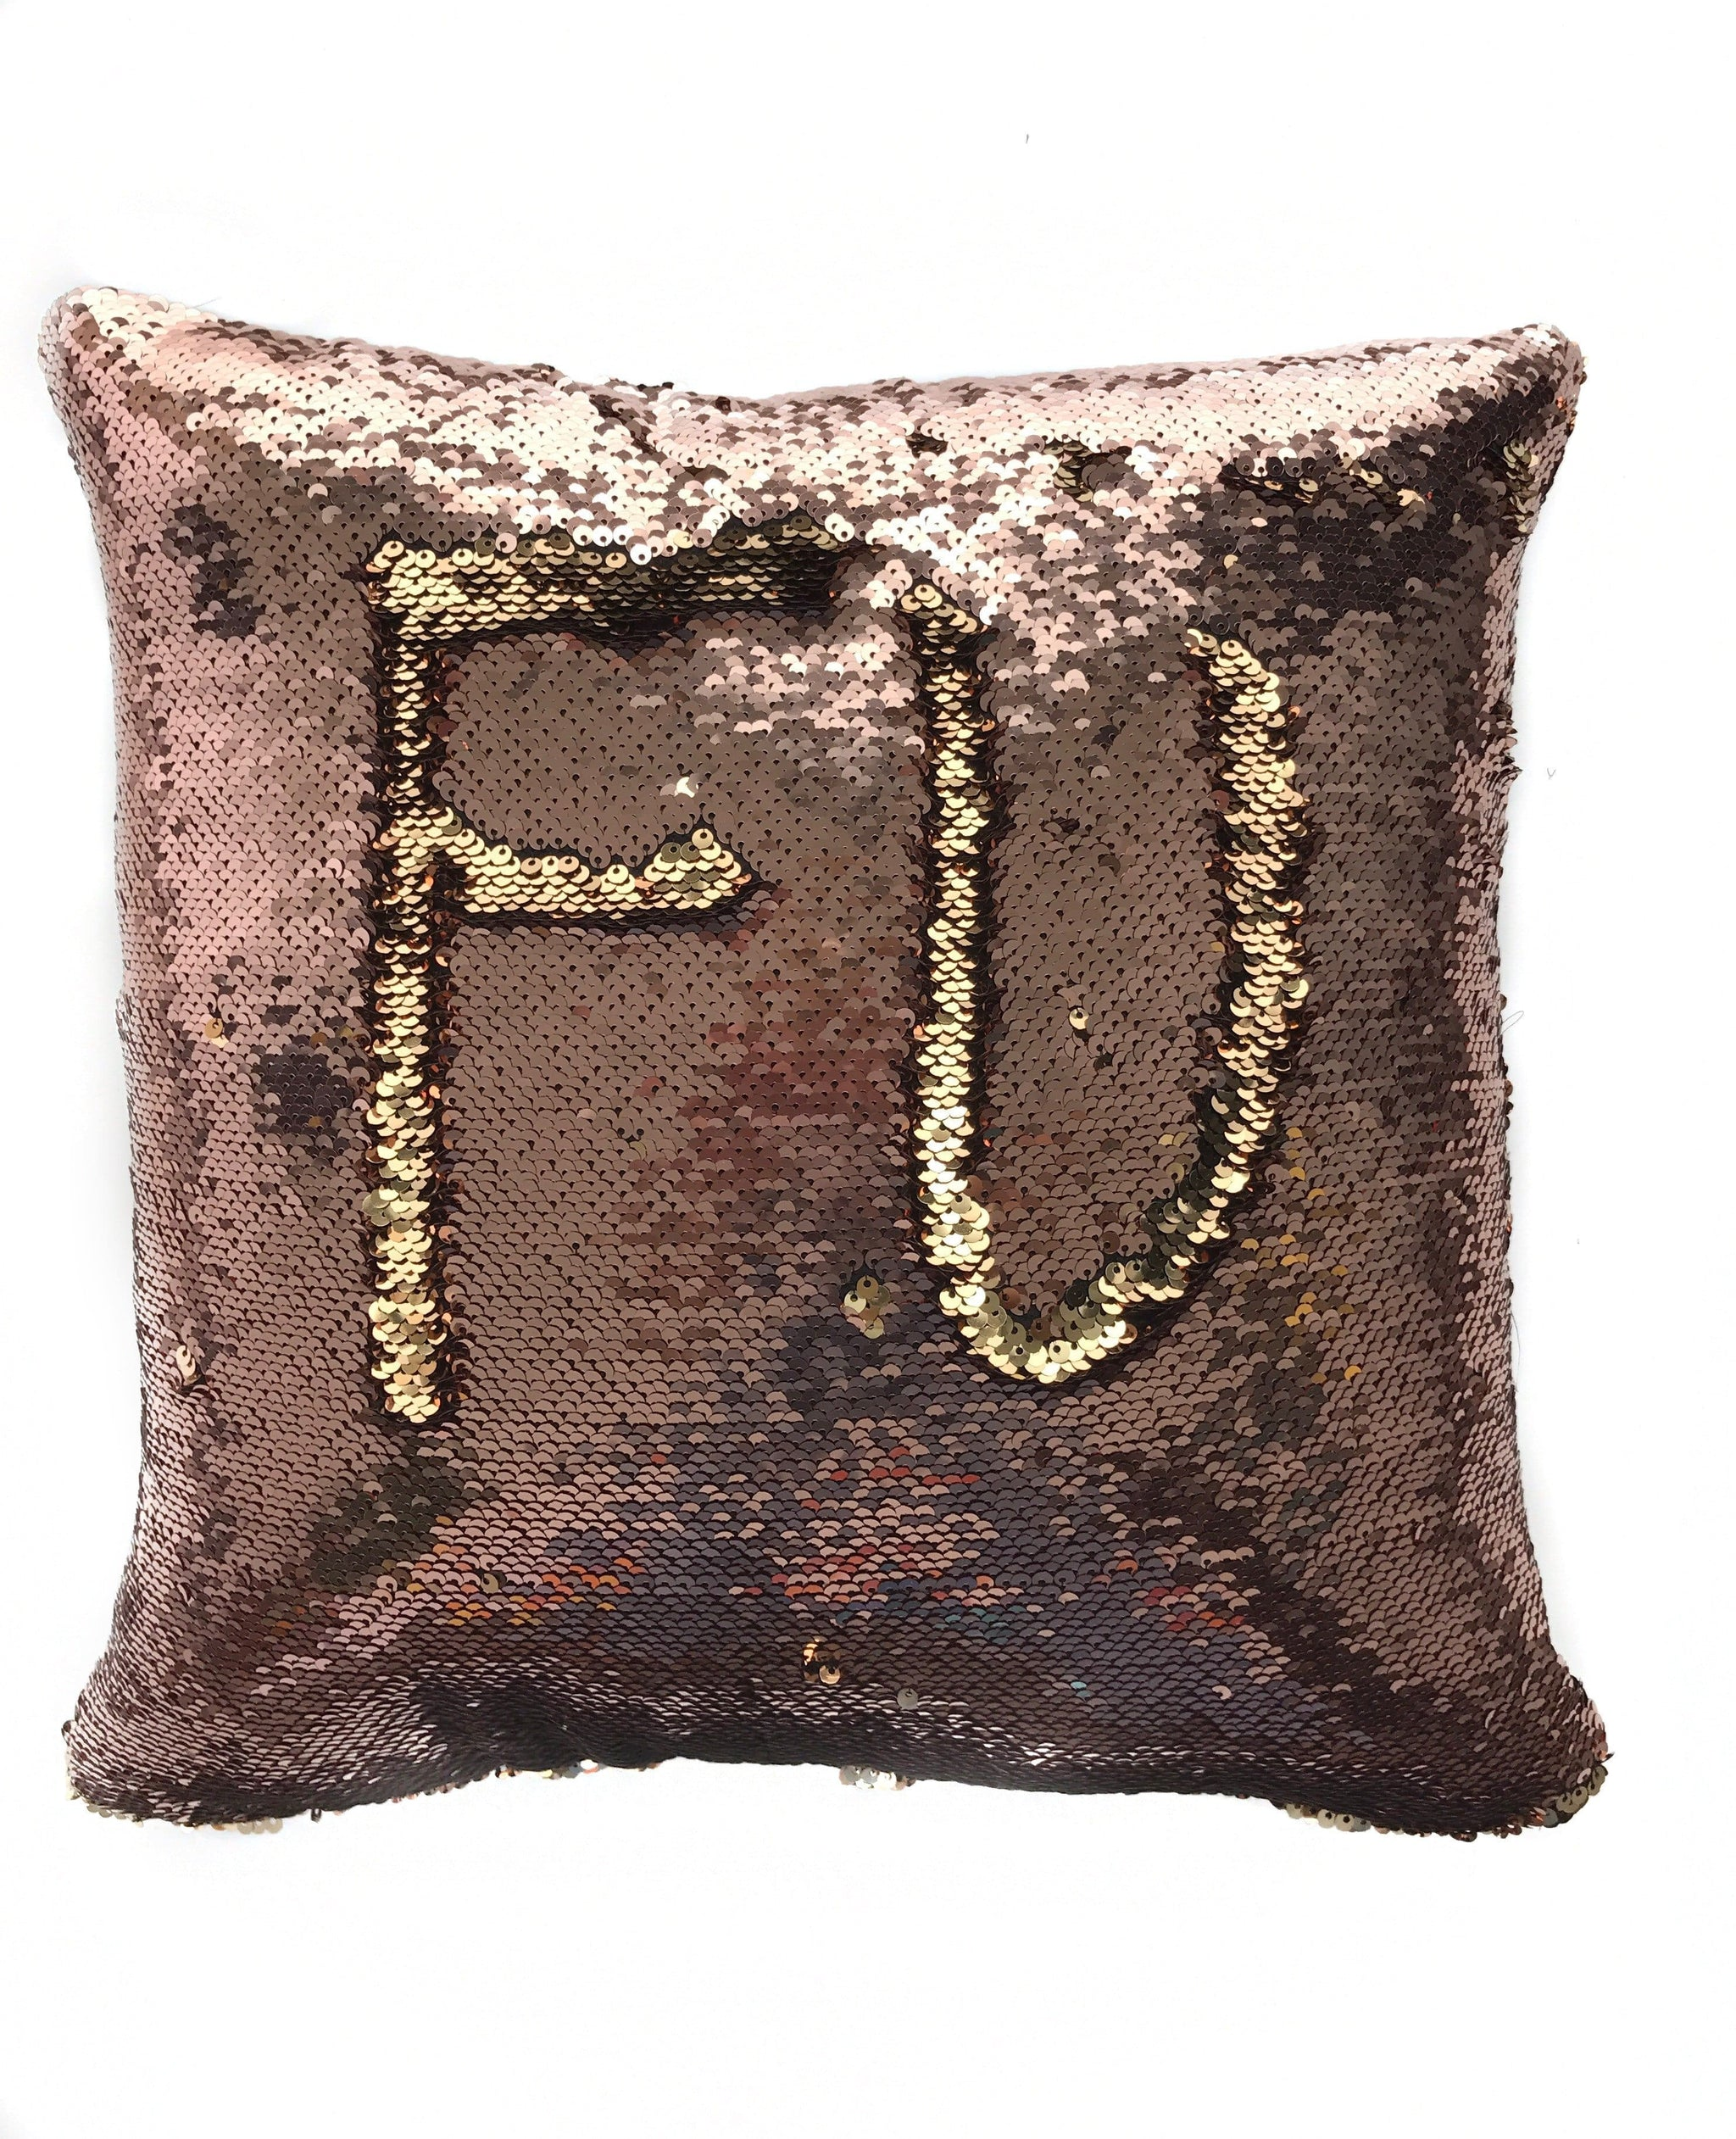 color inches gold white insert changing pillow img products sequin mermaid pillows with